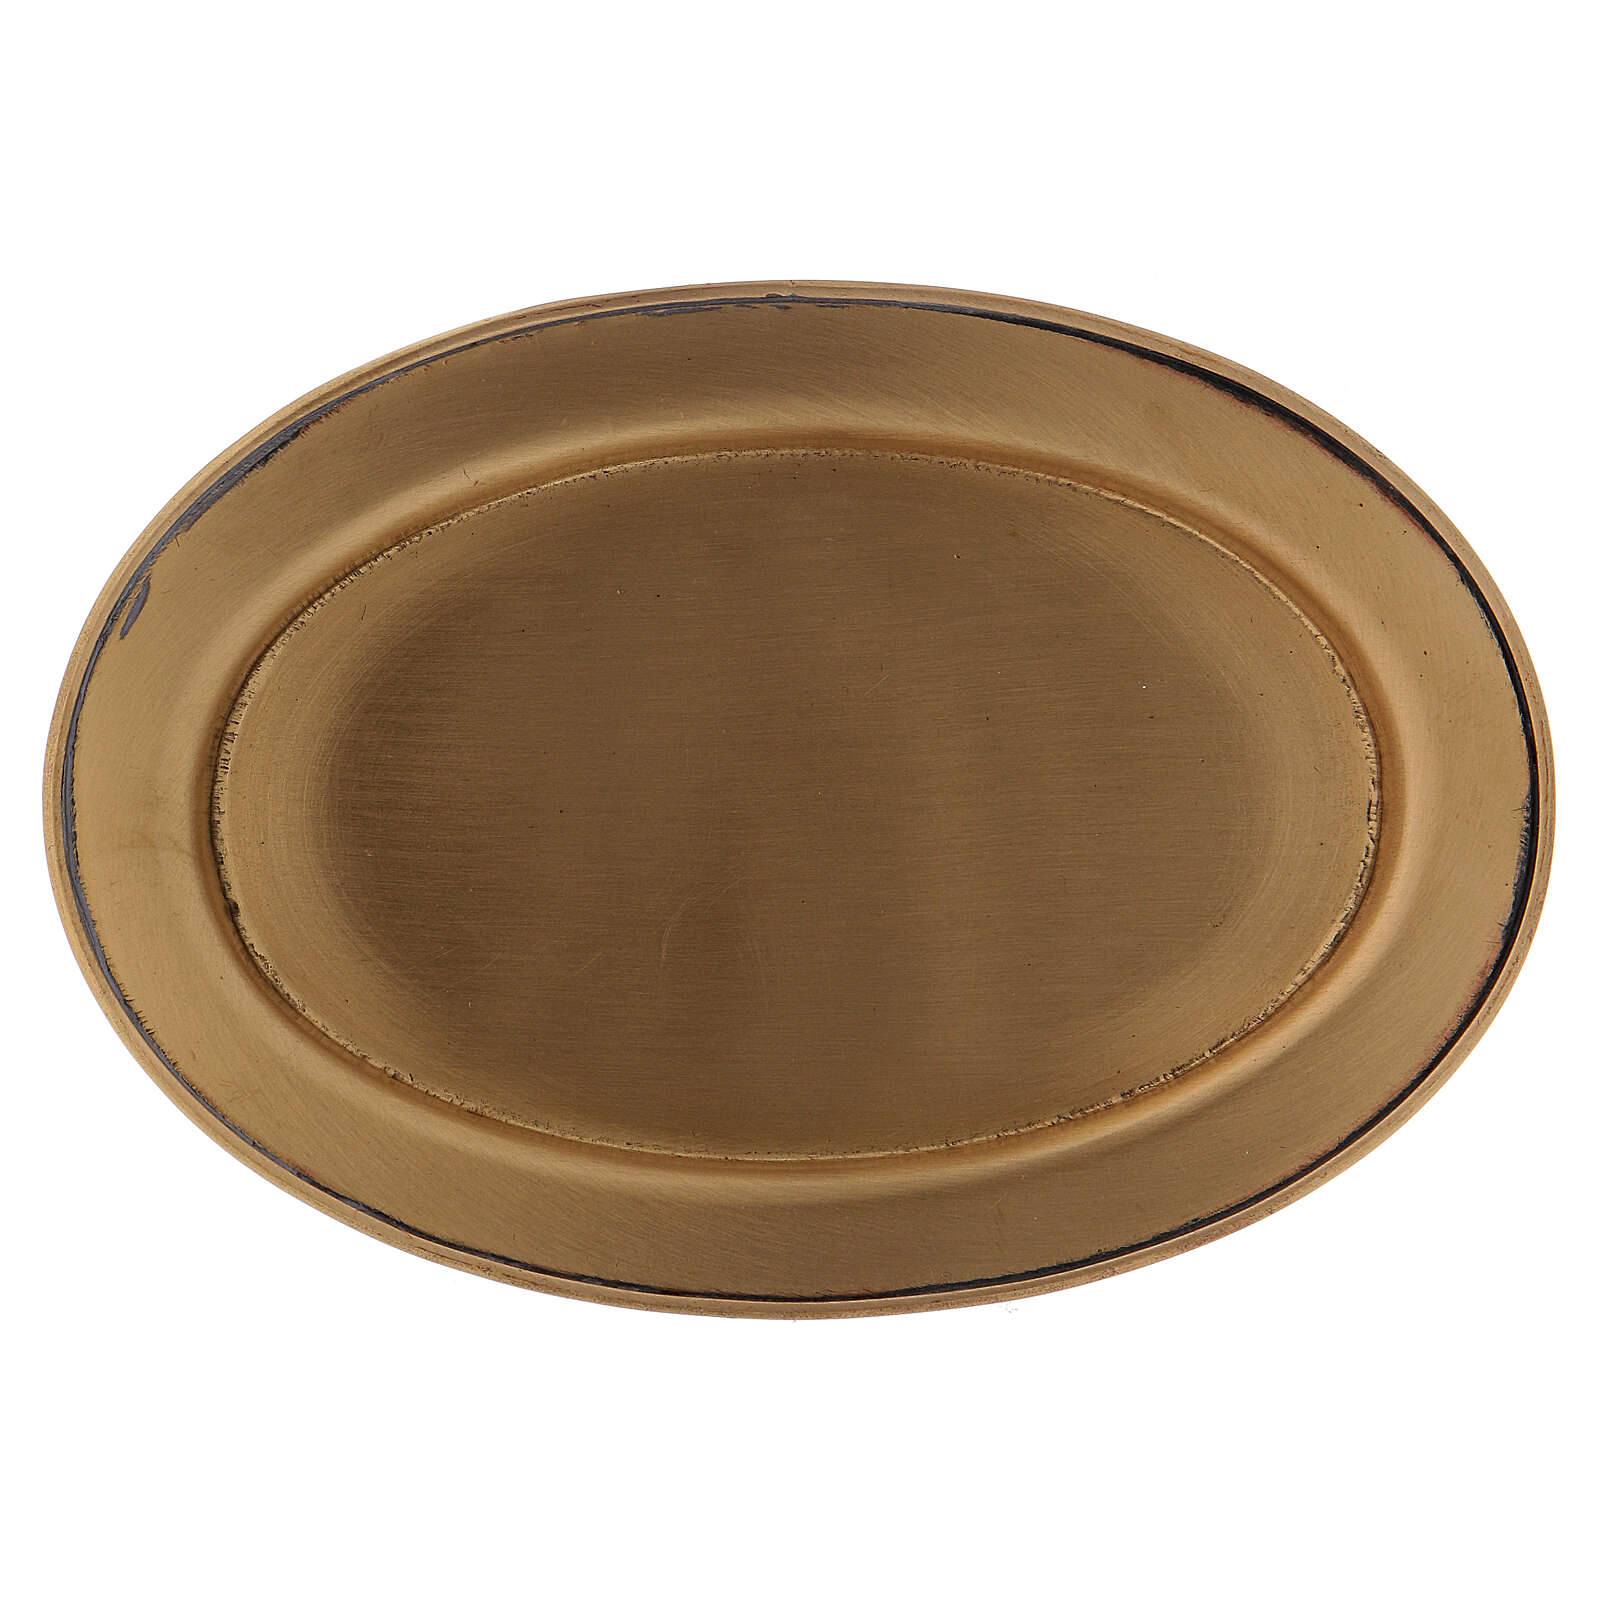 Matte gold plated brass candle holder plate 4 3/4 in 3